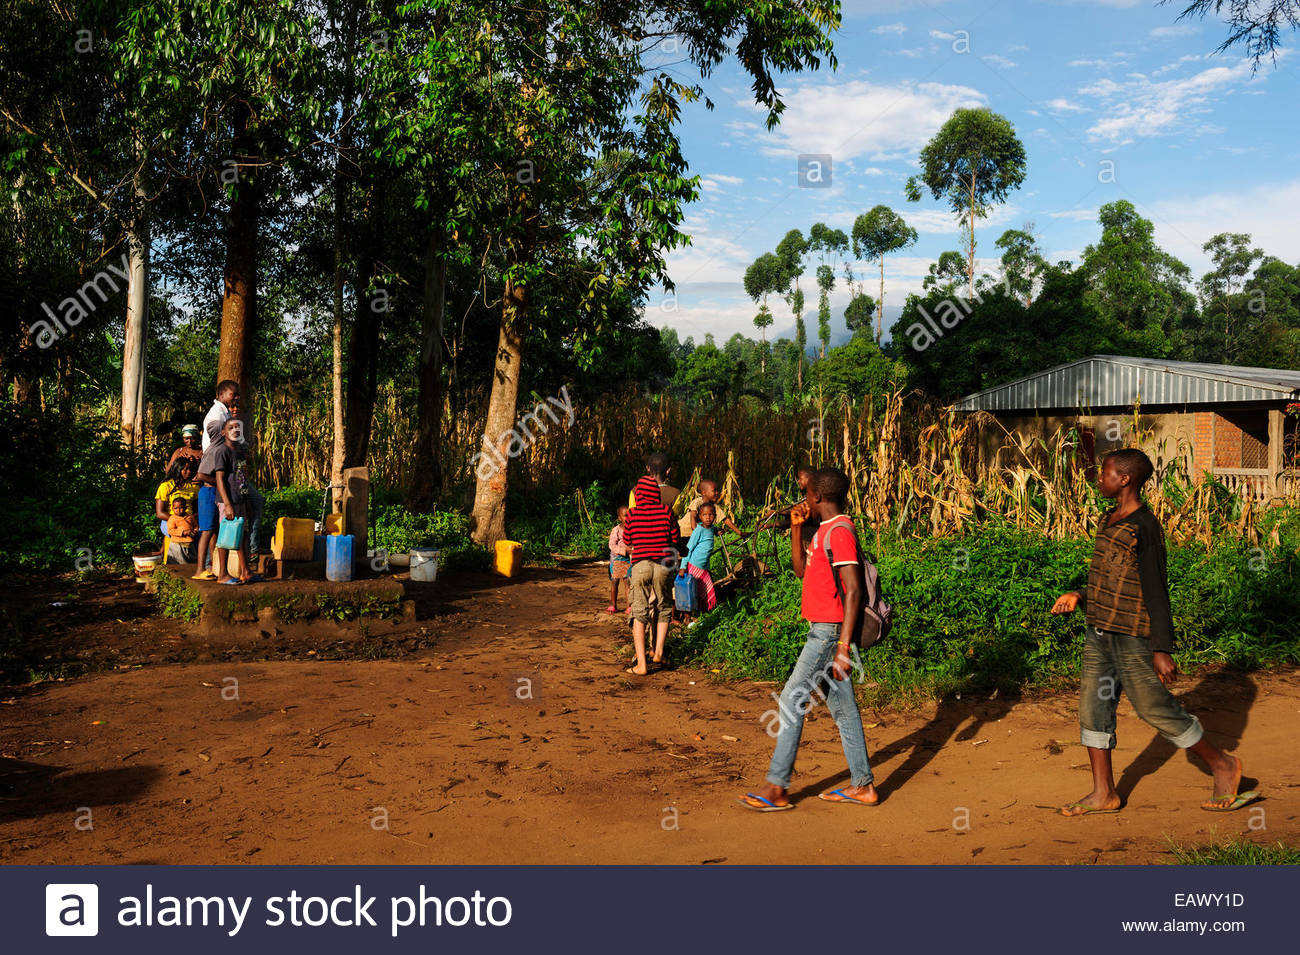 People gather around a village water well. - Stock Image